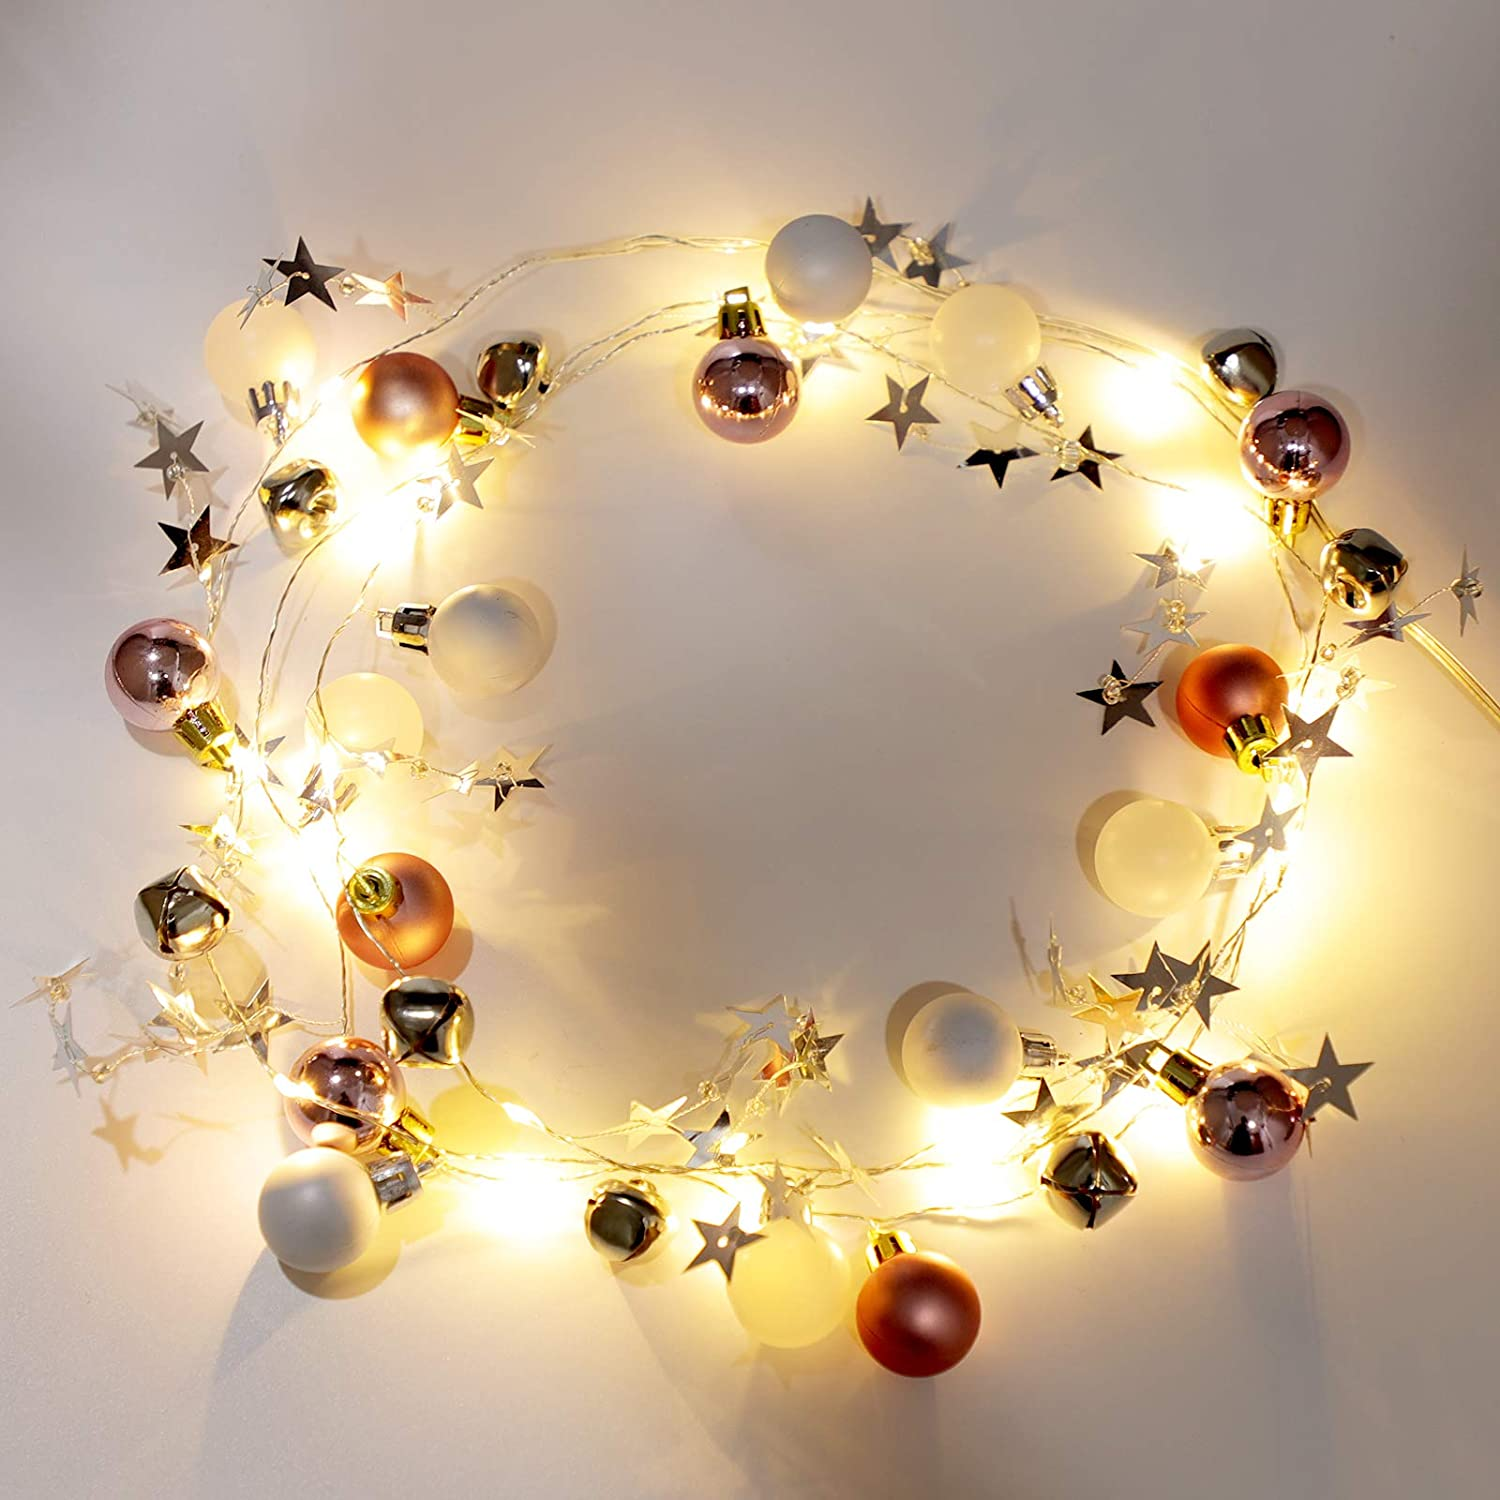 2020 Newest Christmas String Lights 20 LED Battery Powered, 6.6 FT Fairy Lights with Bells and Star Ornaments Home Decor, Christmas, Holiday, Party Decoration, Pink & White Ball